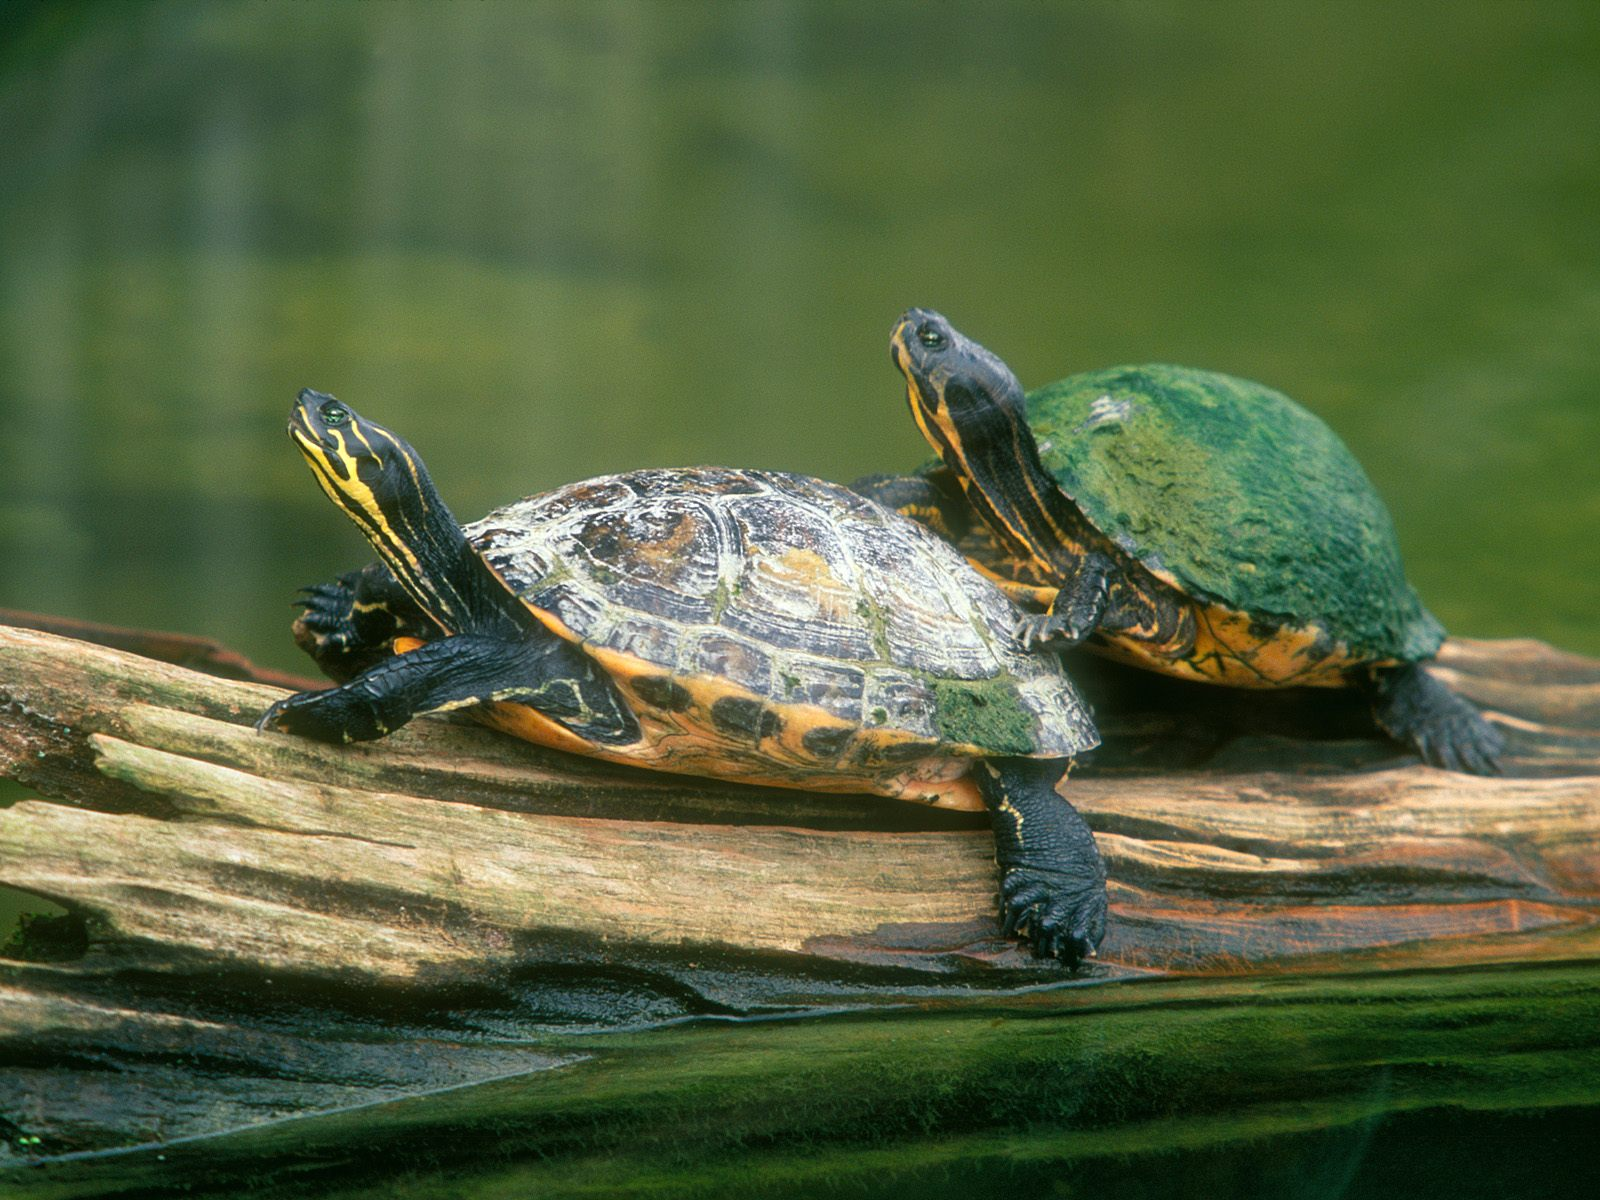 Turtles Photos HD Wallpapers Download Wallpapers in HD for your 1600x1200